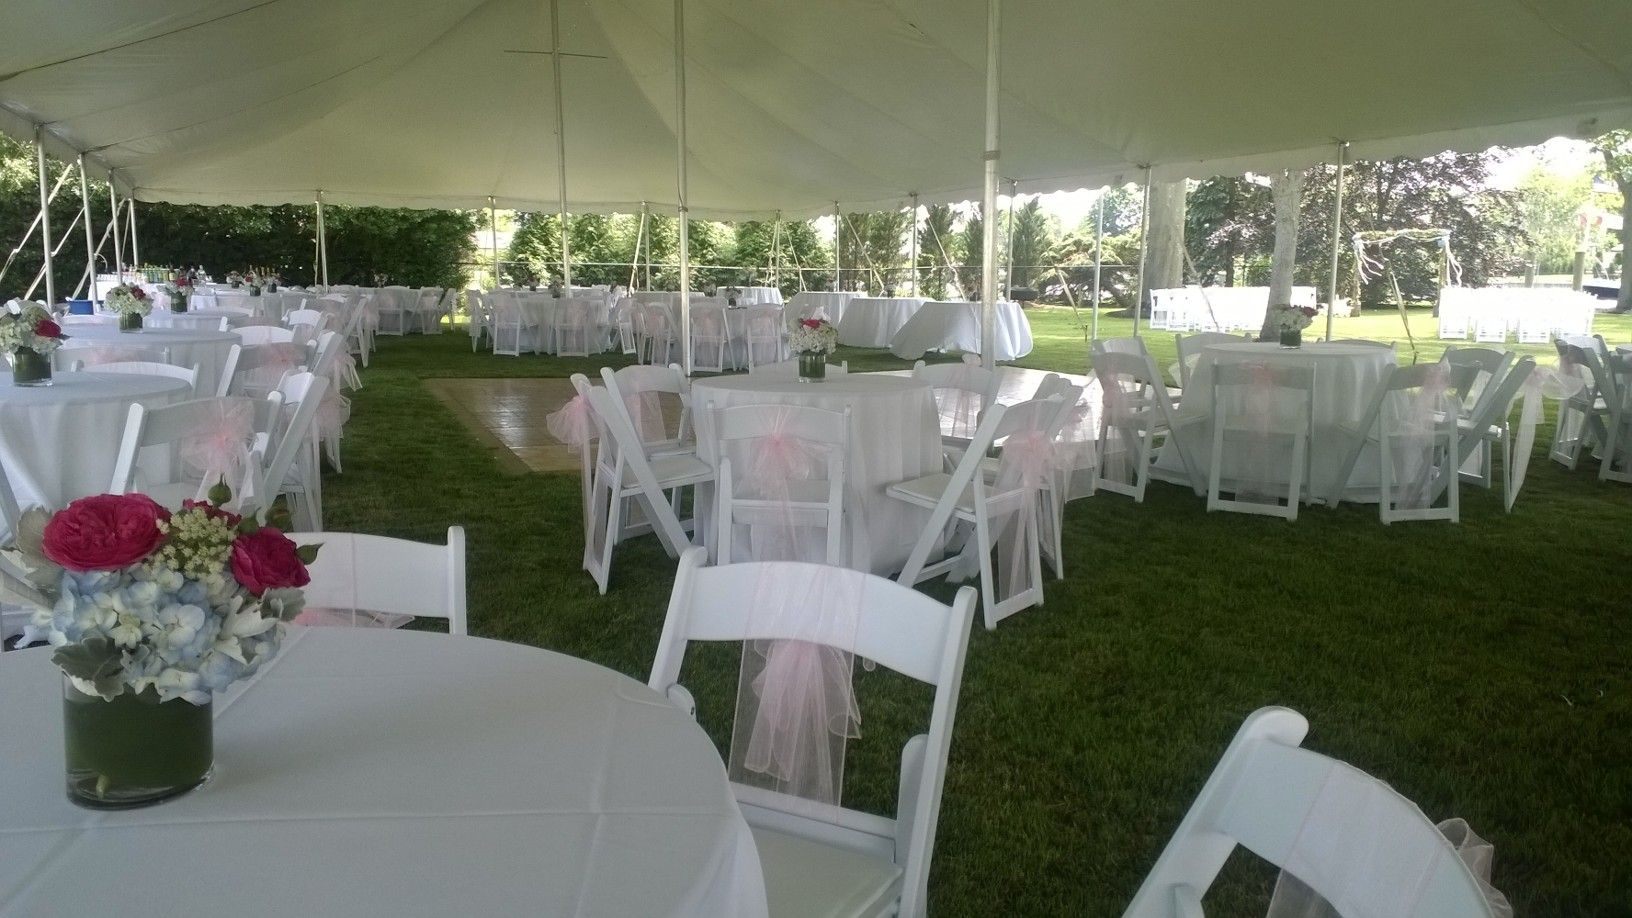 This 40 X 100 High Peak Rope And Pole Tent Was For A Cocktail Wedding Reception For 200 Guests Event Tent Cocktail Wedding Reception Wedding Rentals